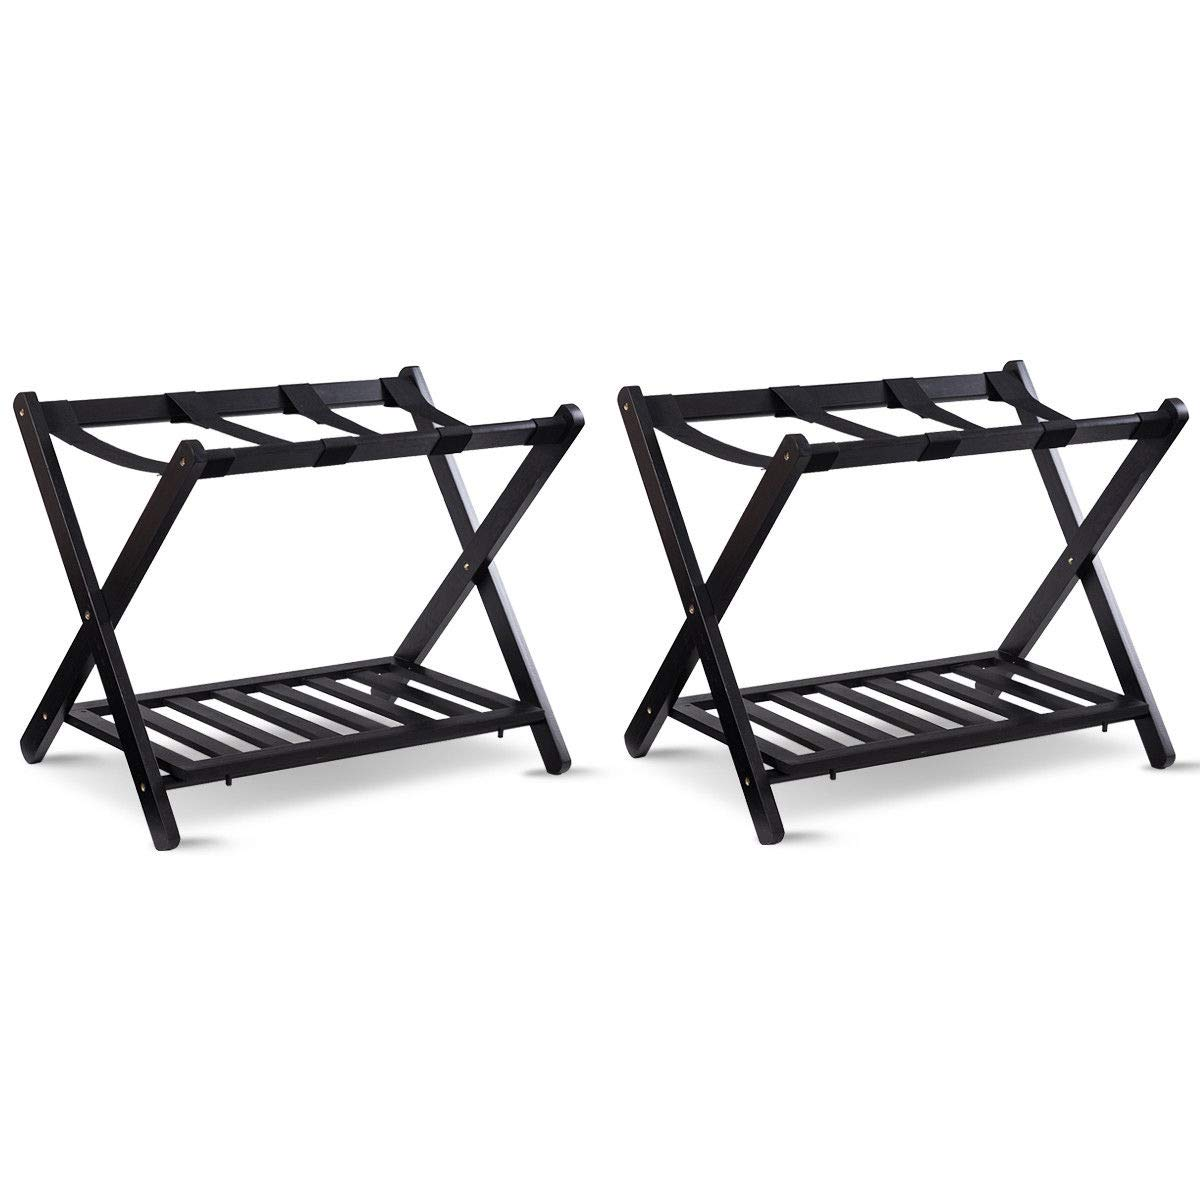 TANGKULA Luggage Rack Folding Wood Suitcase Luggage Stand for Home Bedroom Guestroom Hotel Rooms with Shelf(001 2PCS)